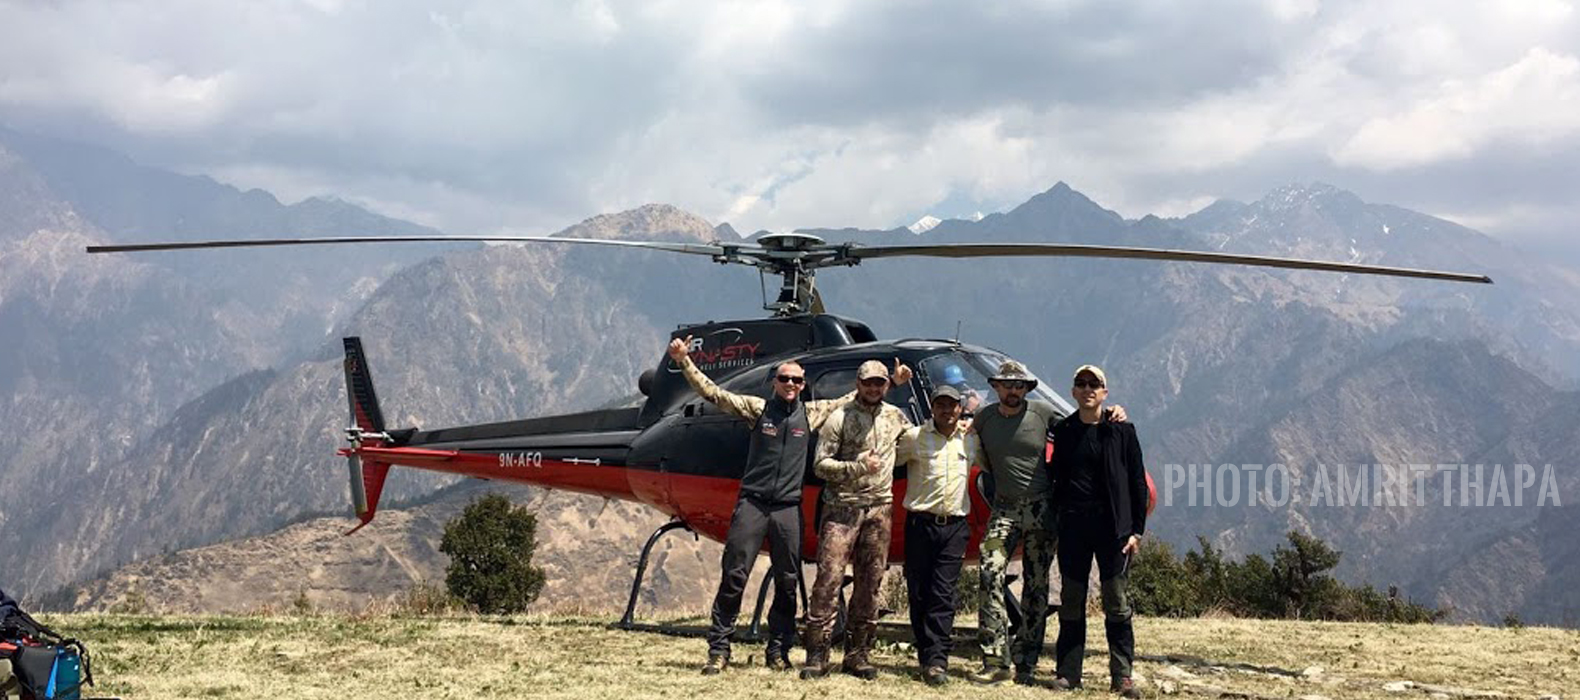 Nepal Hunting Safari